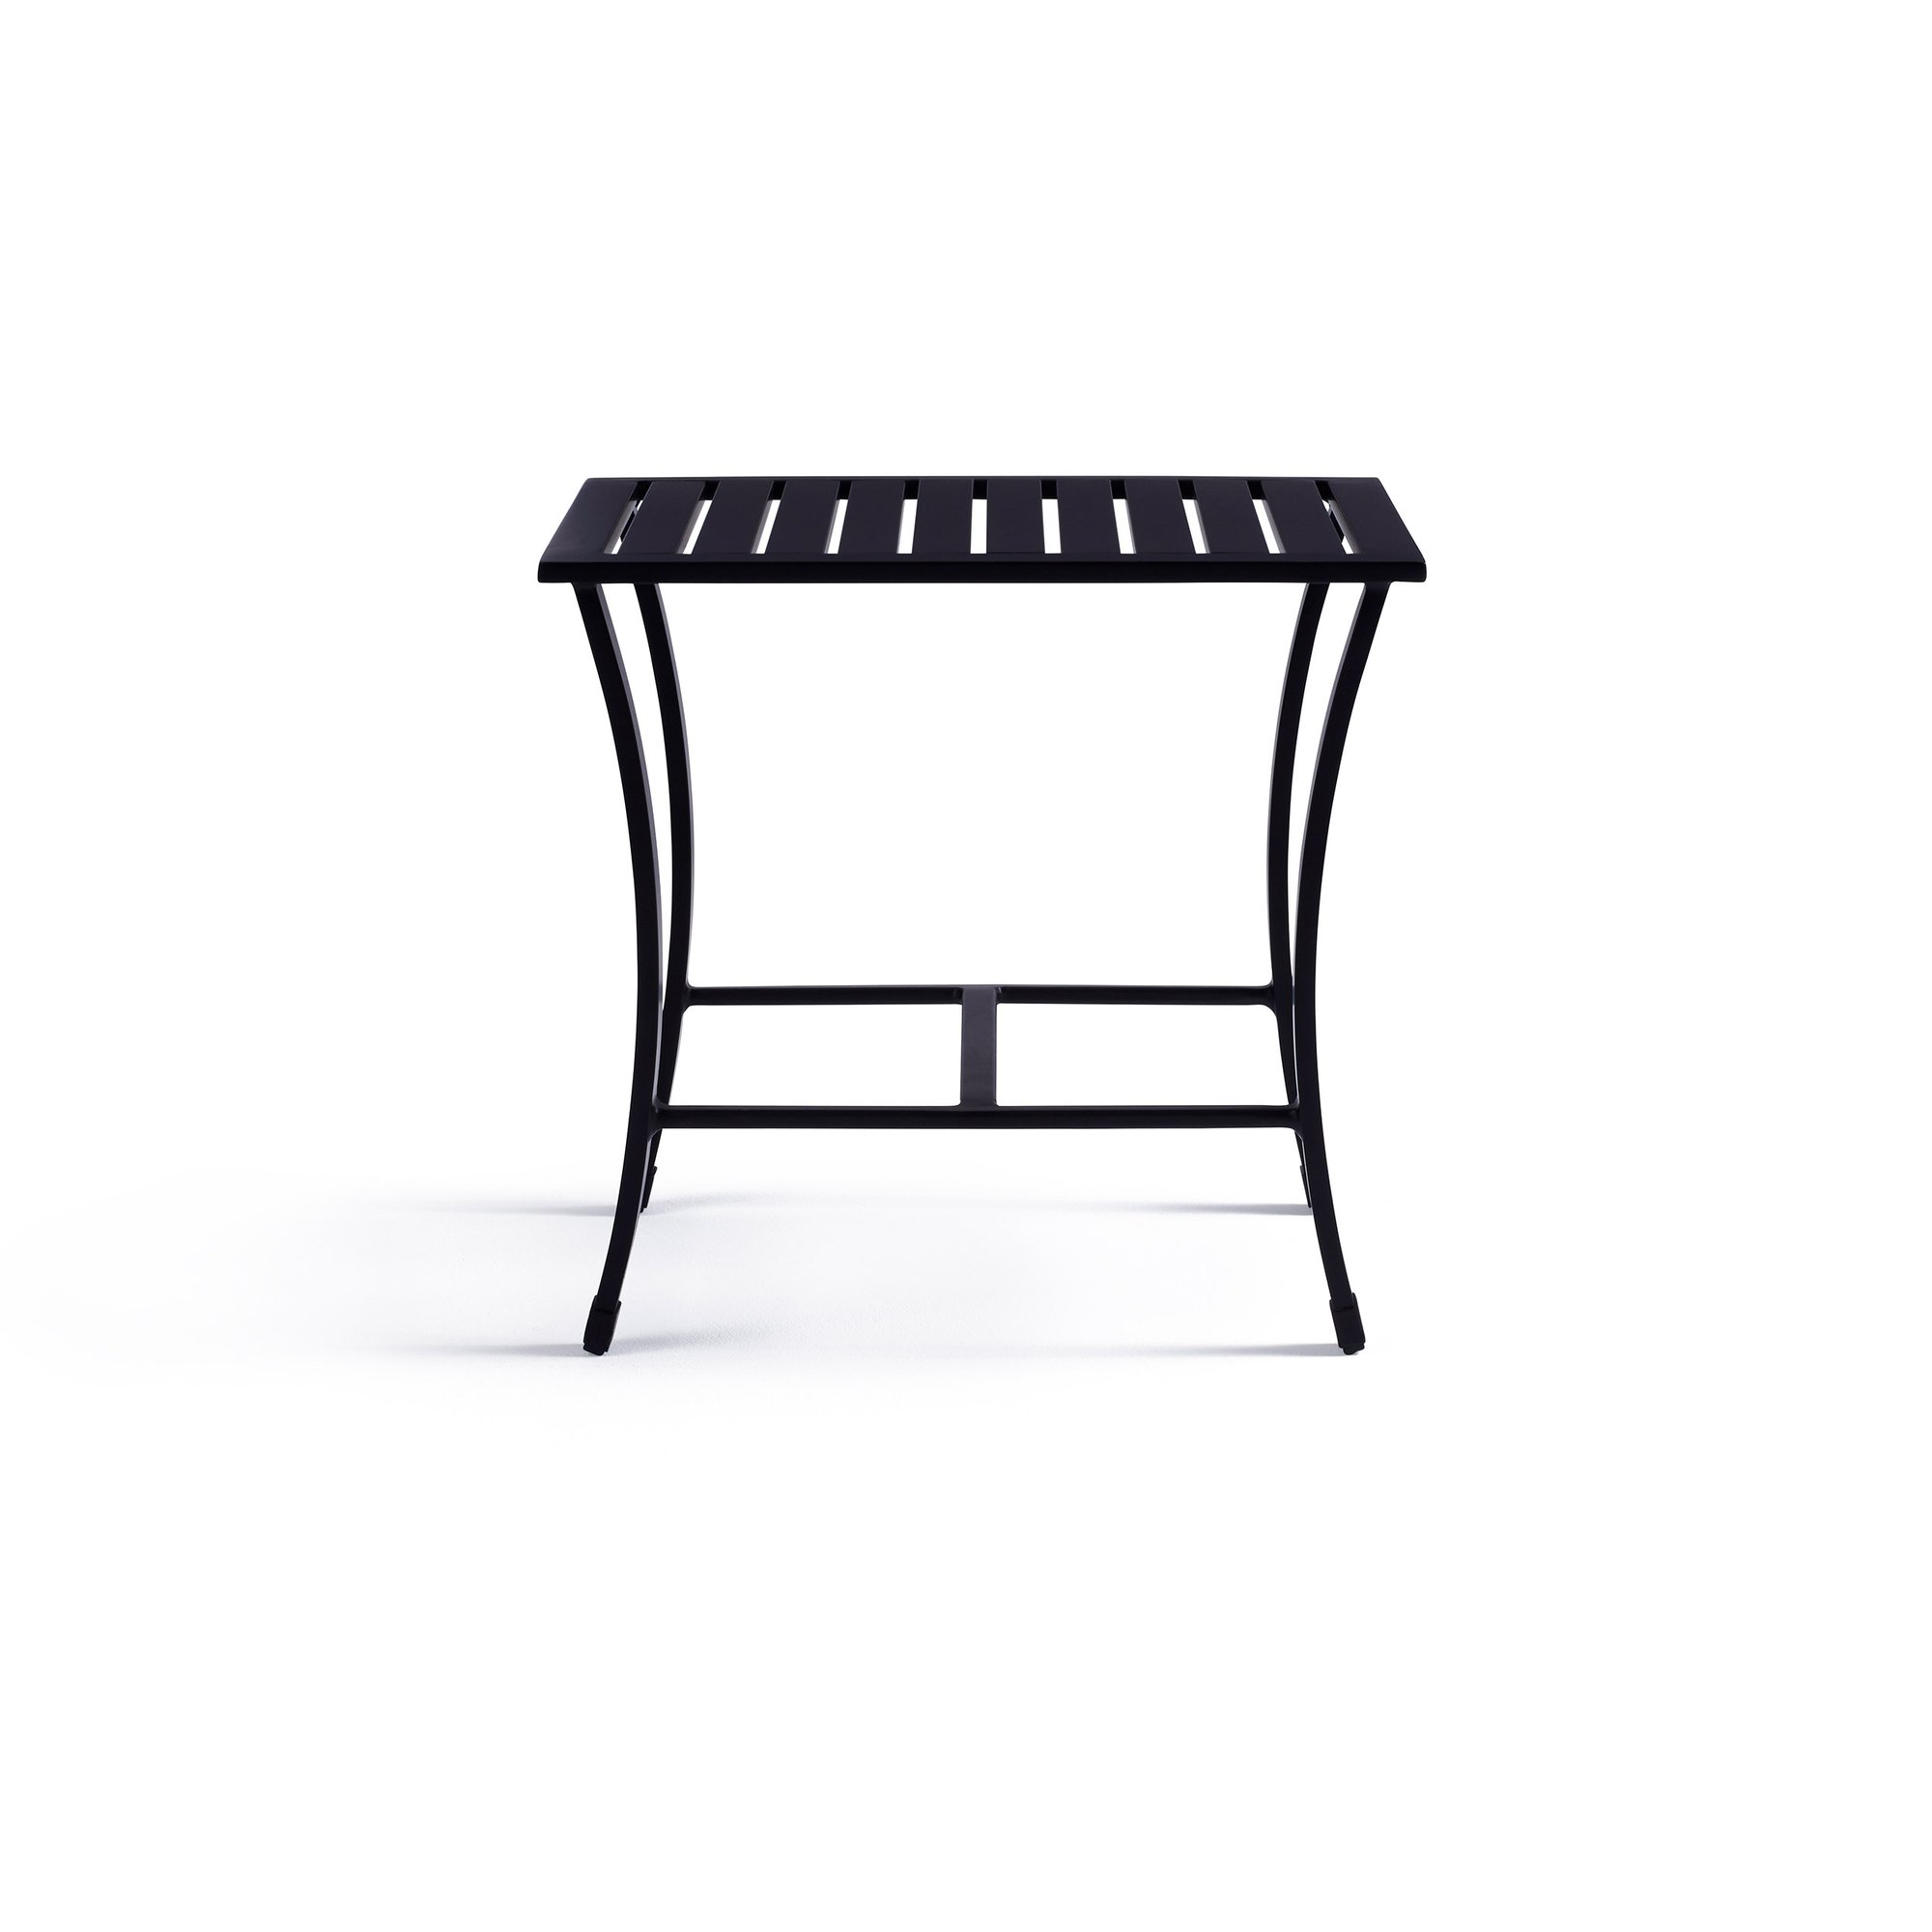 colby outdoor side table yardbird and chairs furniture ott storage box ikea cart mirrored chest white slim round pedestal accent wood homesense armchair egg chair bunnings